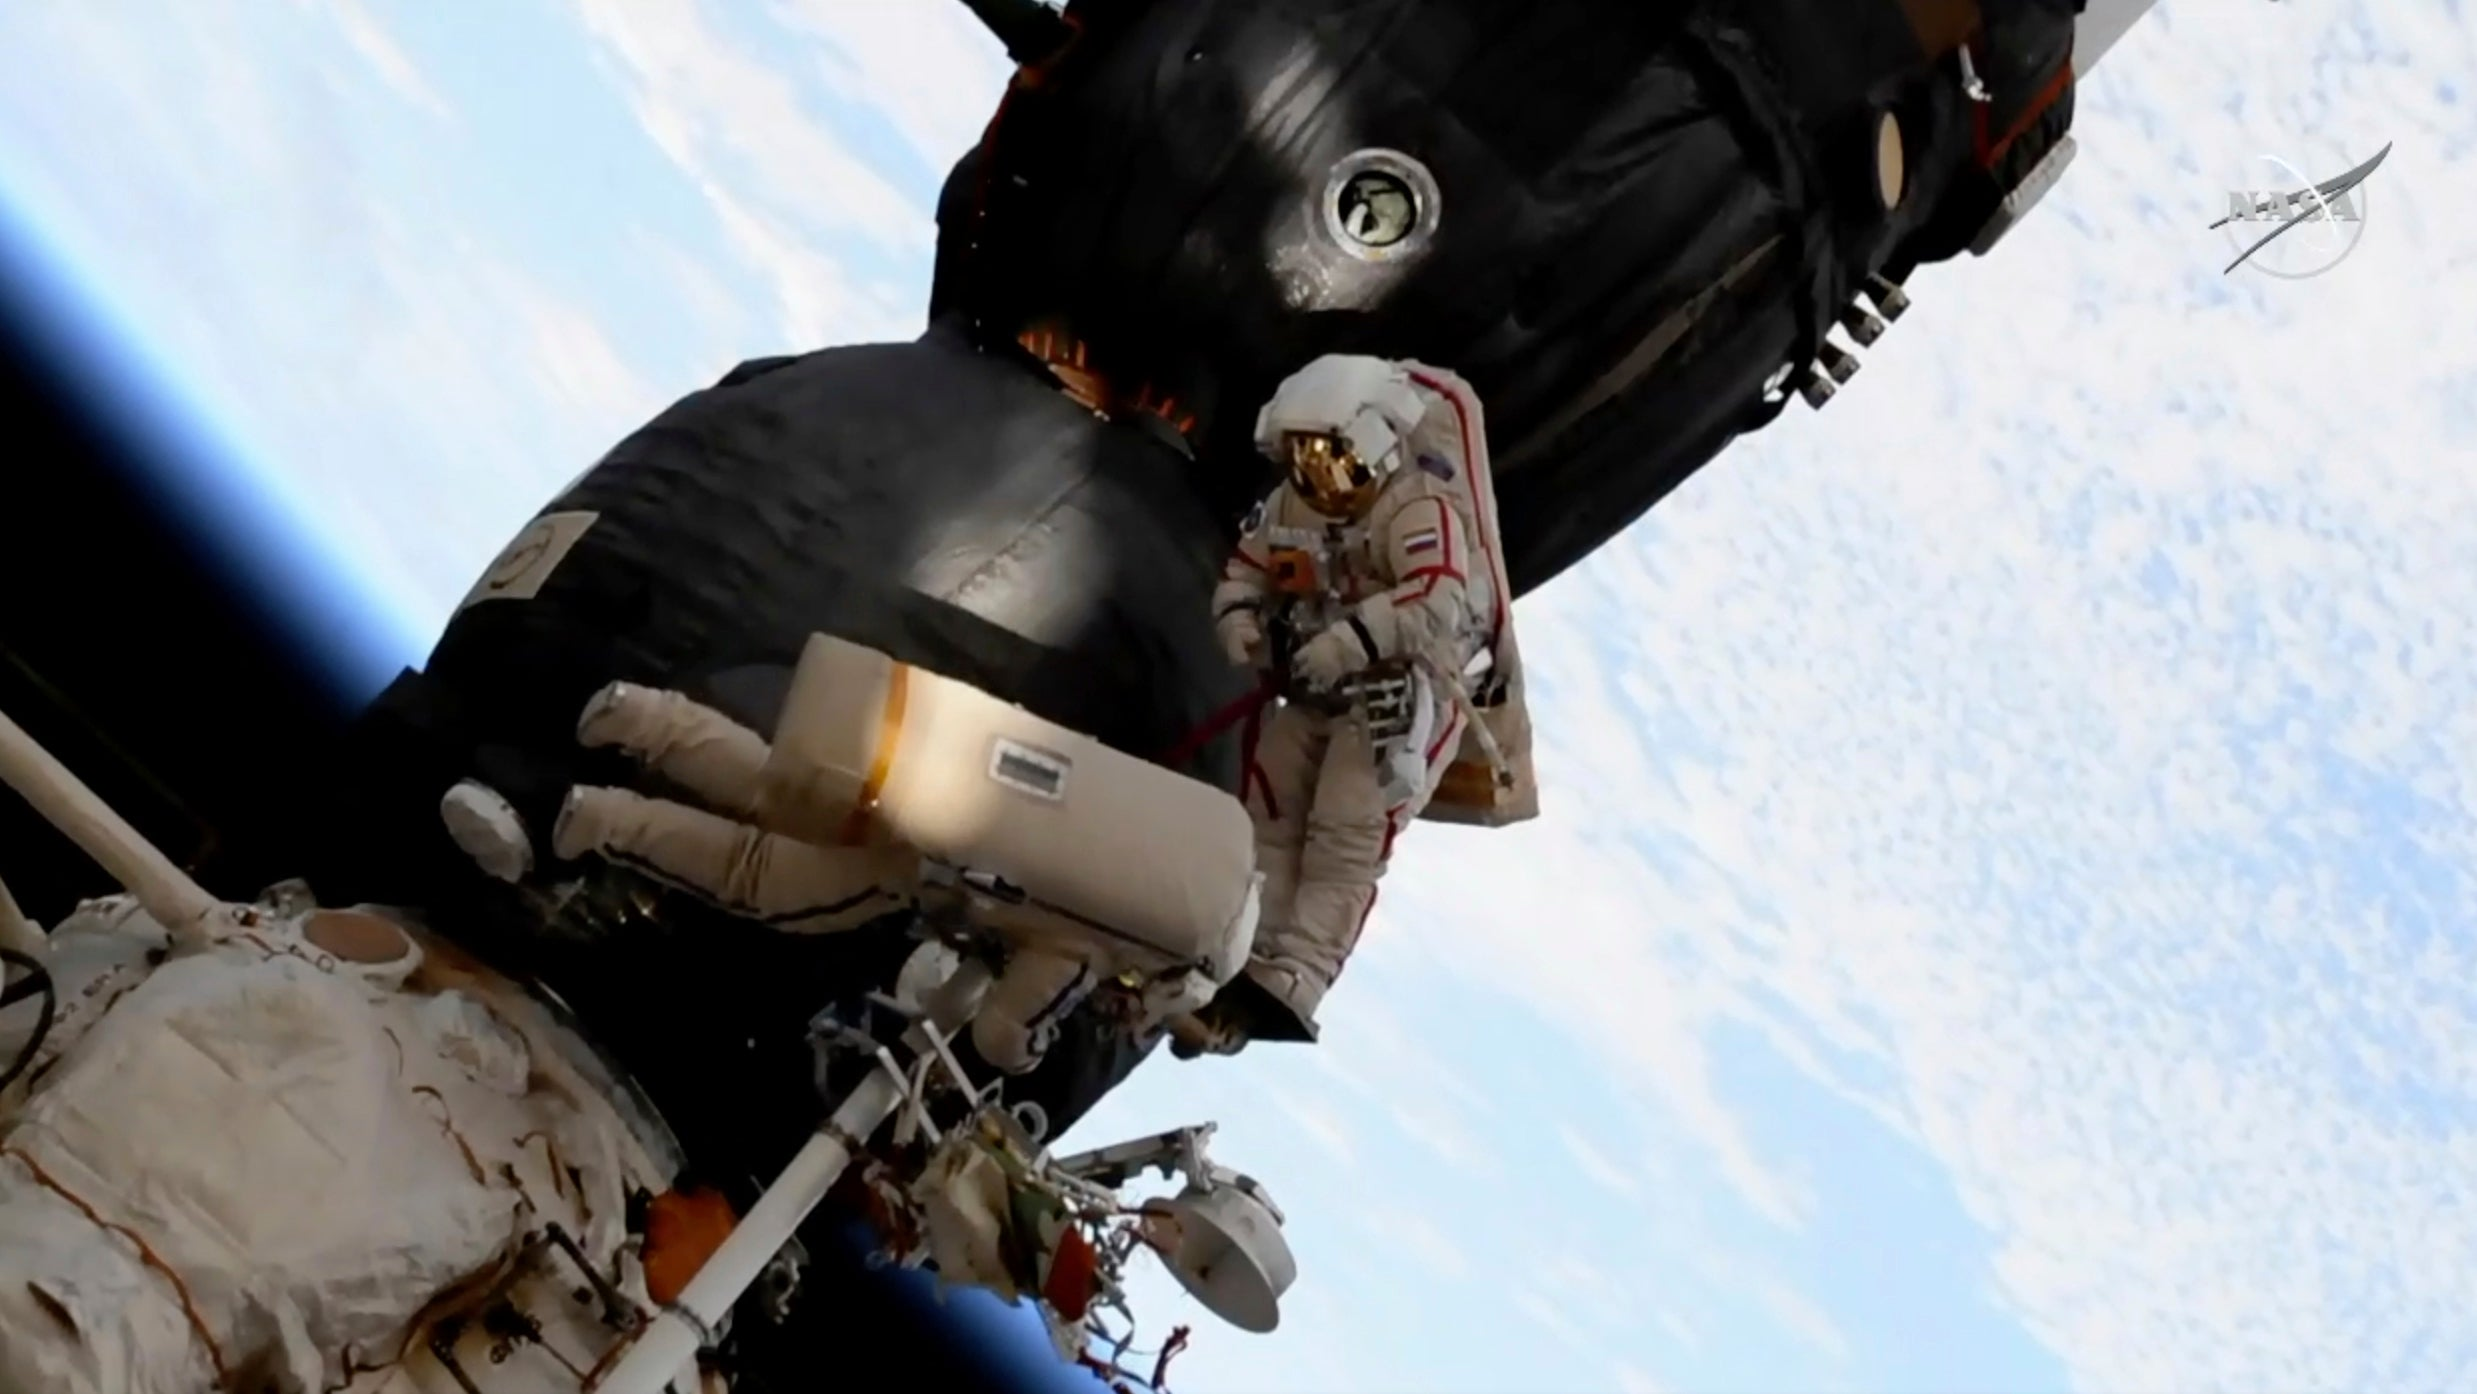 Report: ISS Hole Drilled From The Inside, Cosmonaut Says